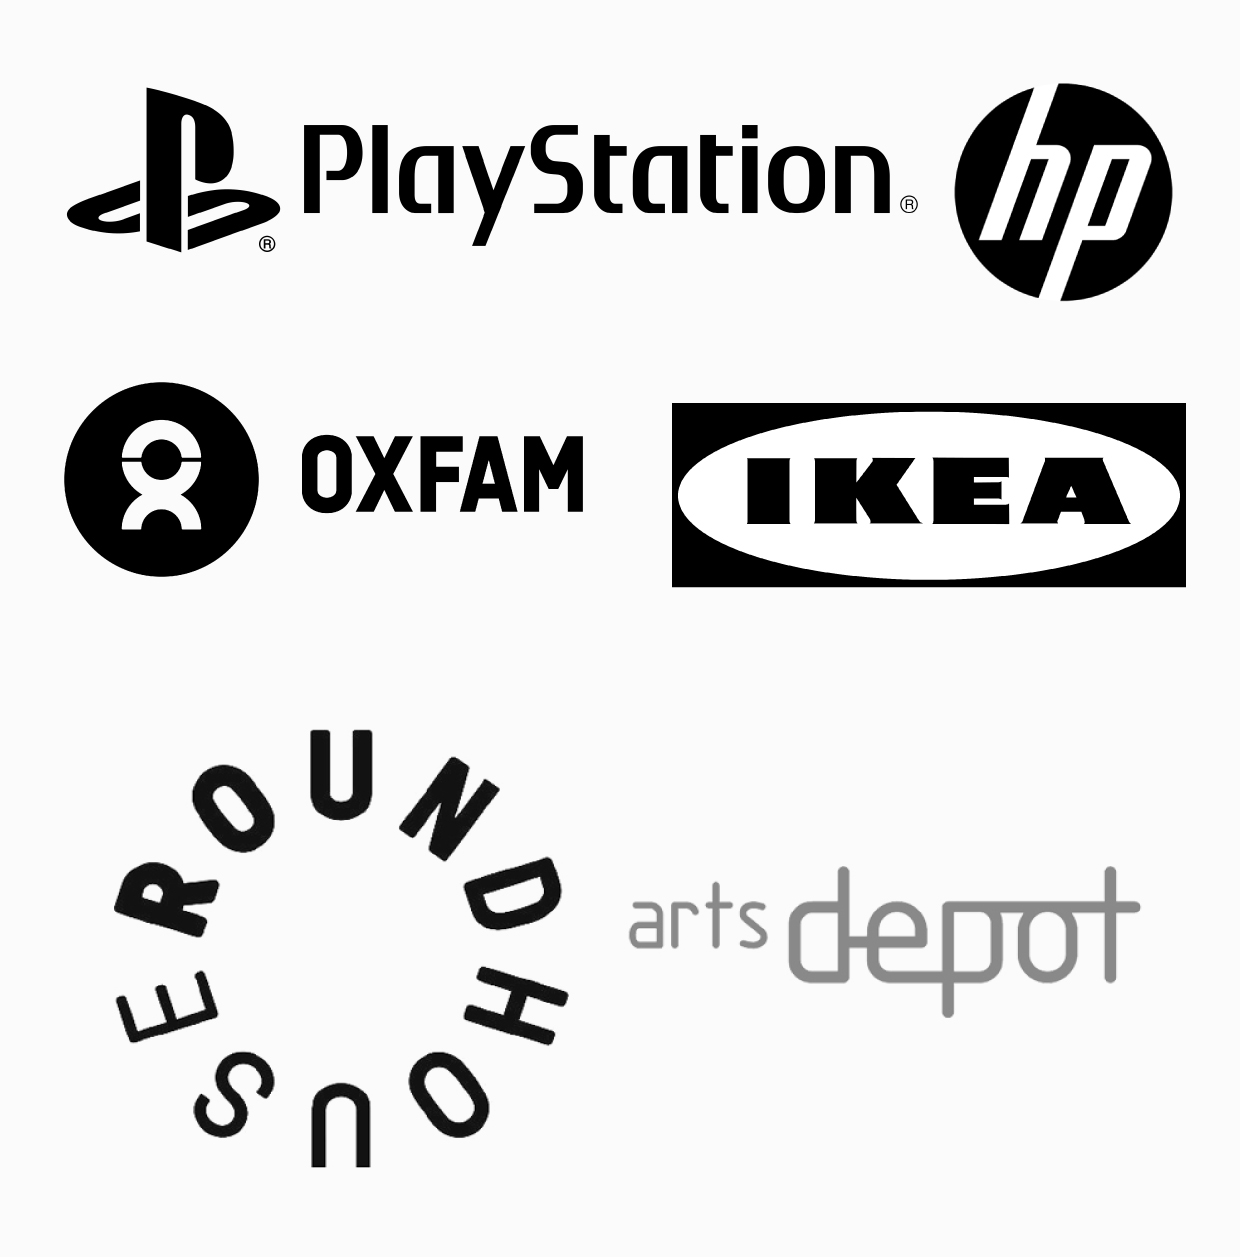 Clients include: - Sainsbury's, The Southbank Centre, Which?, The Old Vic, The Roundhouse, OXFAM, Playstation, IKEA, Hewlett Packard, Seen Presents, Bearded Kitten, Vita Coconut Water, Push UK, Miss Jones & Co, Paris Games Week, Pernod Ricard, Jamesons, Chivas, The Gherkin, Beefeater, Plymouth Gin, London Cocktail Week 2015,Associate companies and artists include:Rhum and Clay Theatre Company, Kit Redstone, Upstart Theatre, Arts Depot, The Handlebards, Red Door Studios, KriyaArts, FilmAble, Haltwhistle Film Project, Fluff Productions, Tim Hunkin, Lisa Luxx, Cherry Truluck, Xavier De sousa, Rebecca Crookshank, Sandra Dieckmann, Jessica Beck.